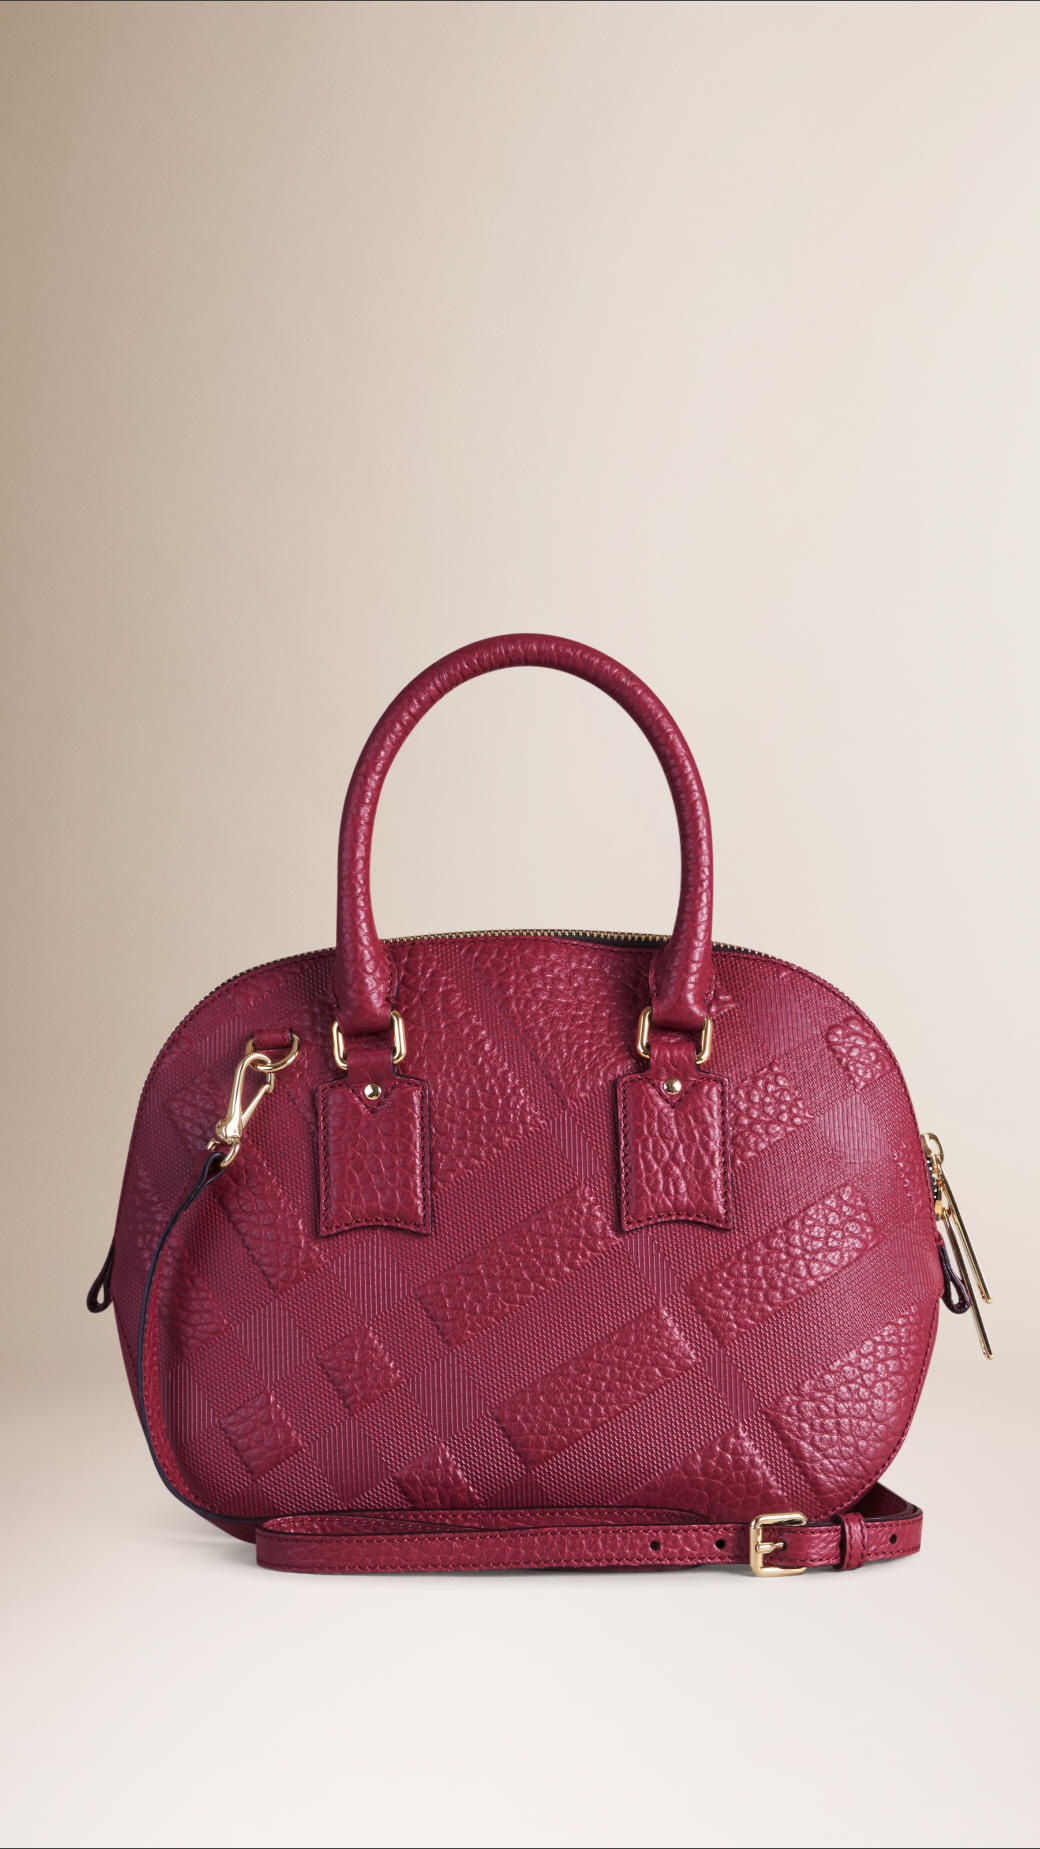 74dab03f408 Lyst - Burberry The Small Orchard In Embossed Check Leather Dark ...